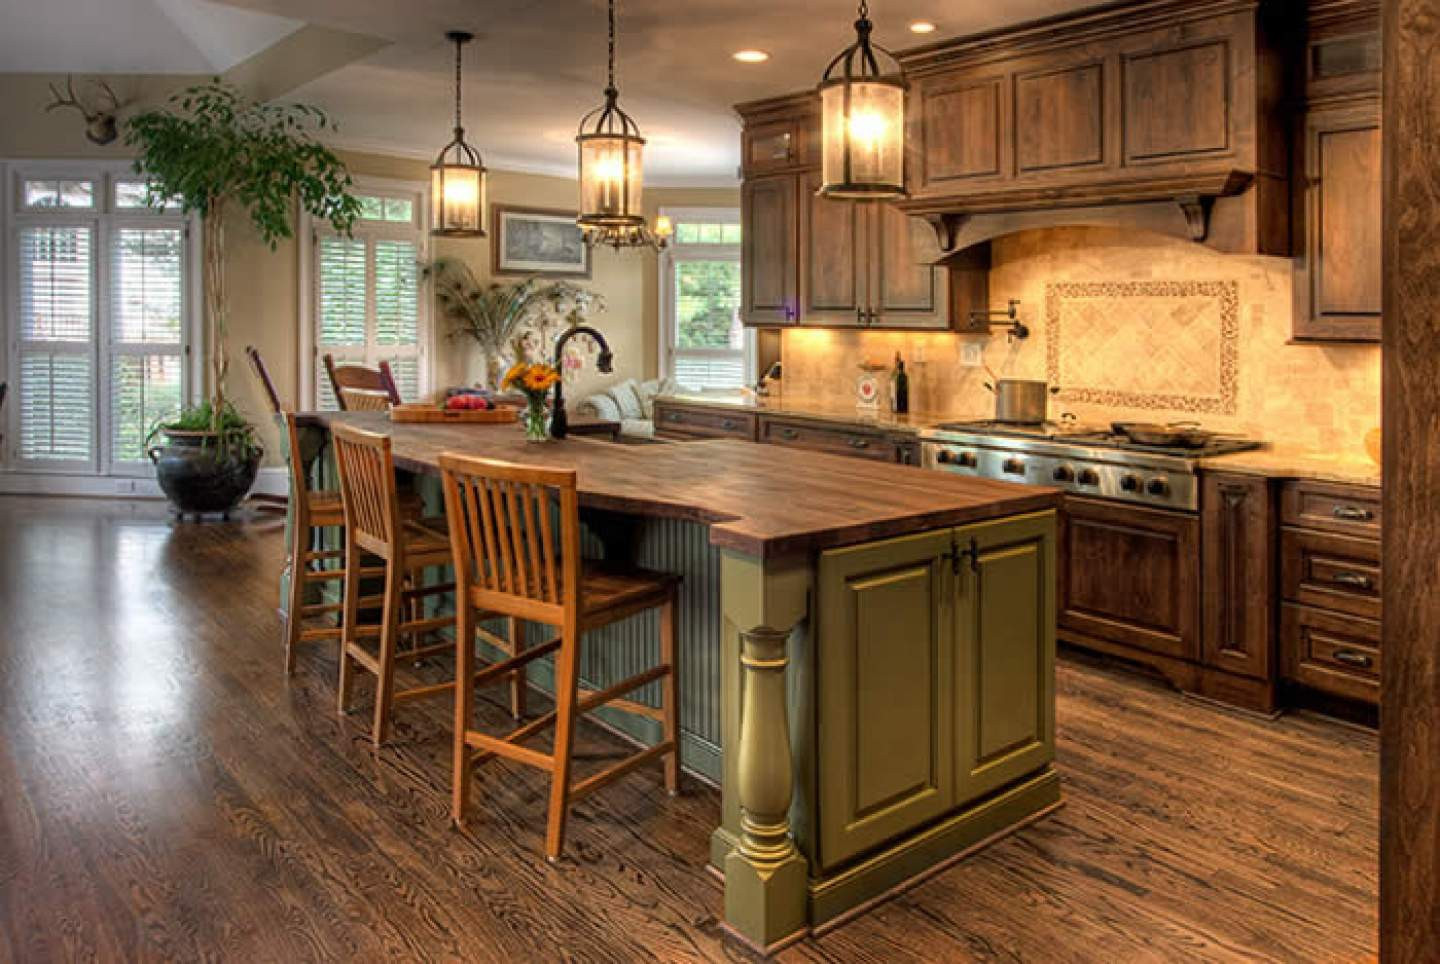 Wood Laminate Flooring Vs Hardwood Of How Good is Laminate Flooring In Kitchens Elegant Extraordinaryod within How Good is Laminate Flooring In Kitchens Elegant Extraordinaryod Floors In Kitchen Problems Laminate Flooring